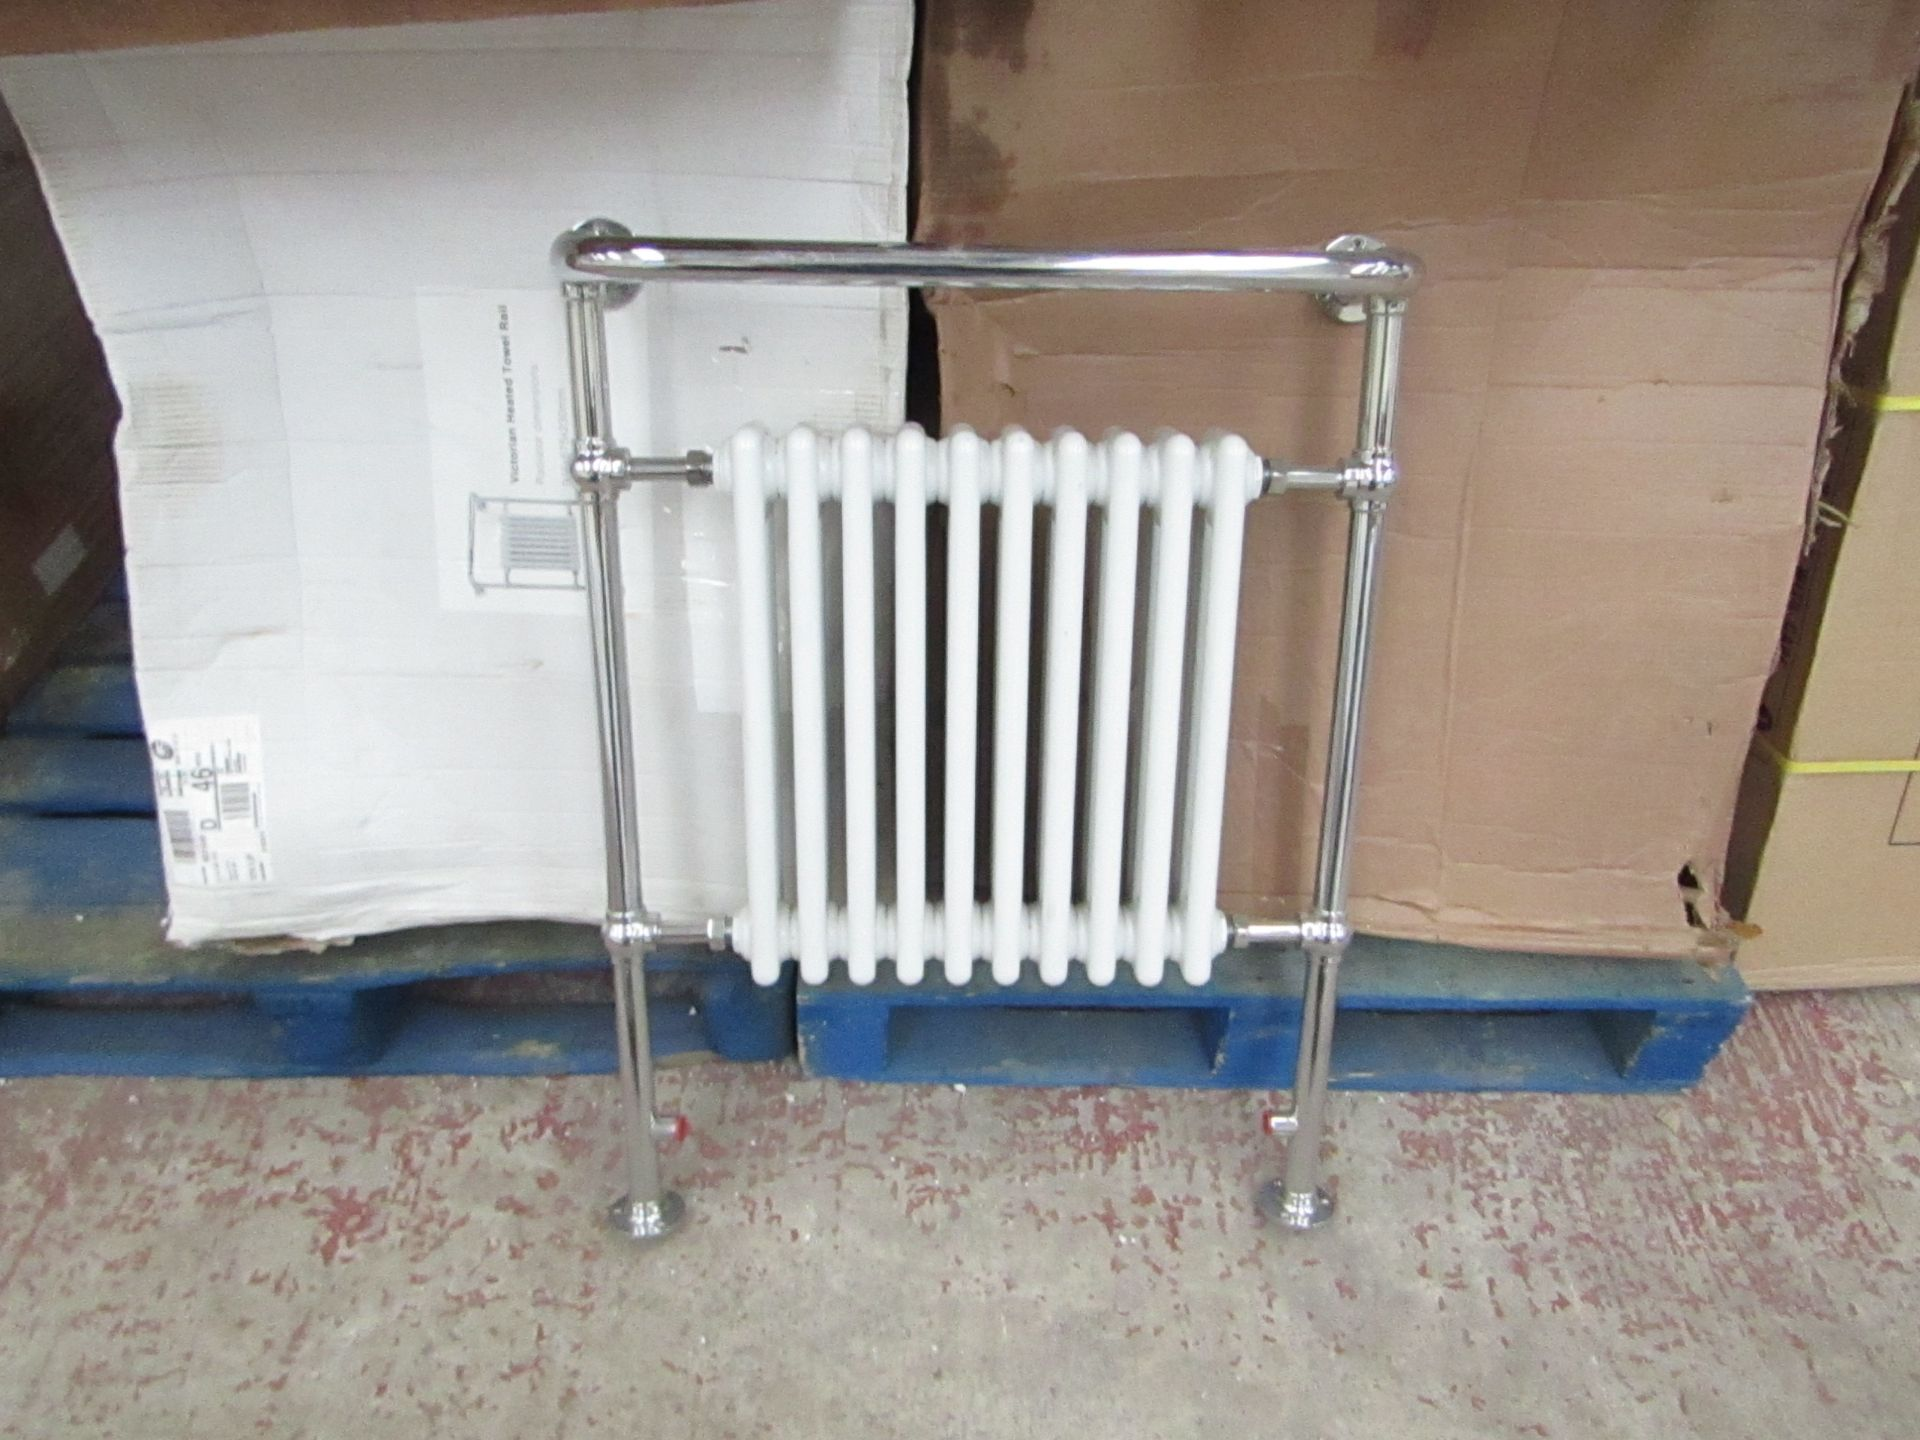 Lot 5 - Old London 10 section traditional radiator, unchecked and boxed, 70cm W x 93cm T x 24cm D